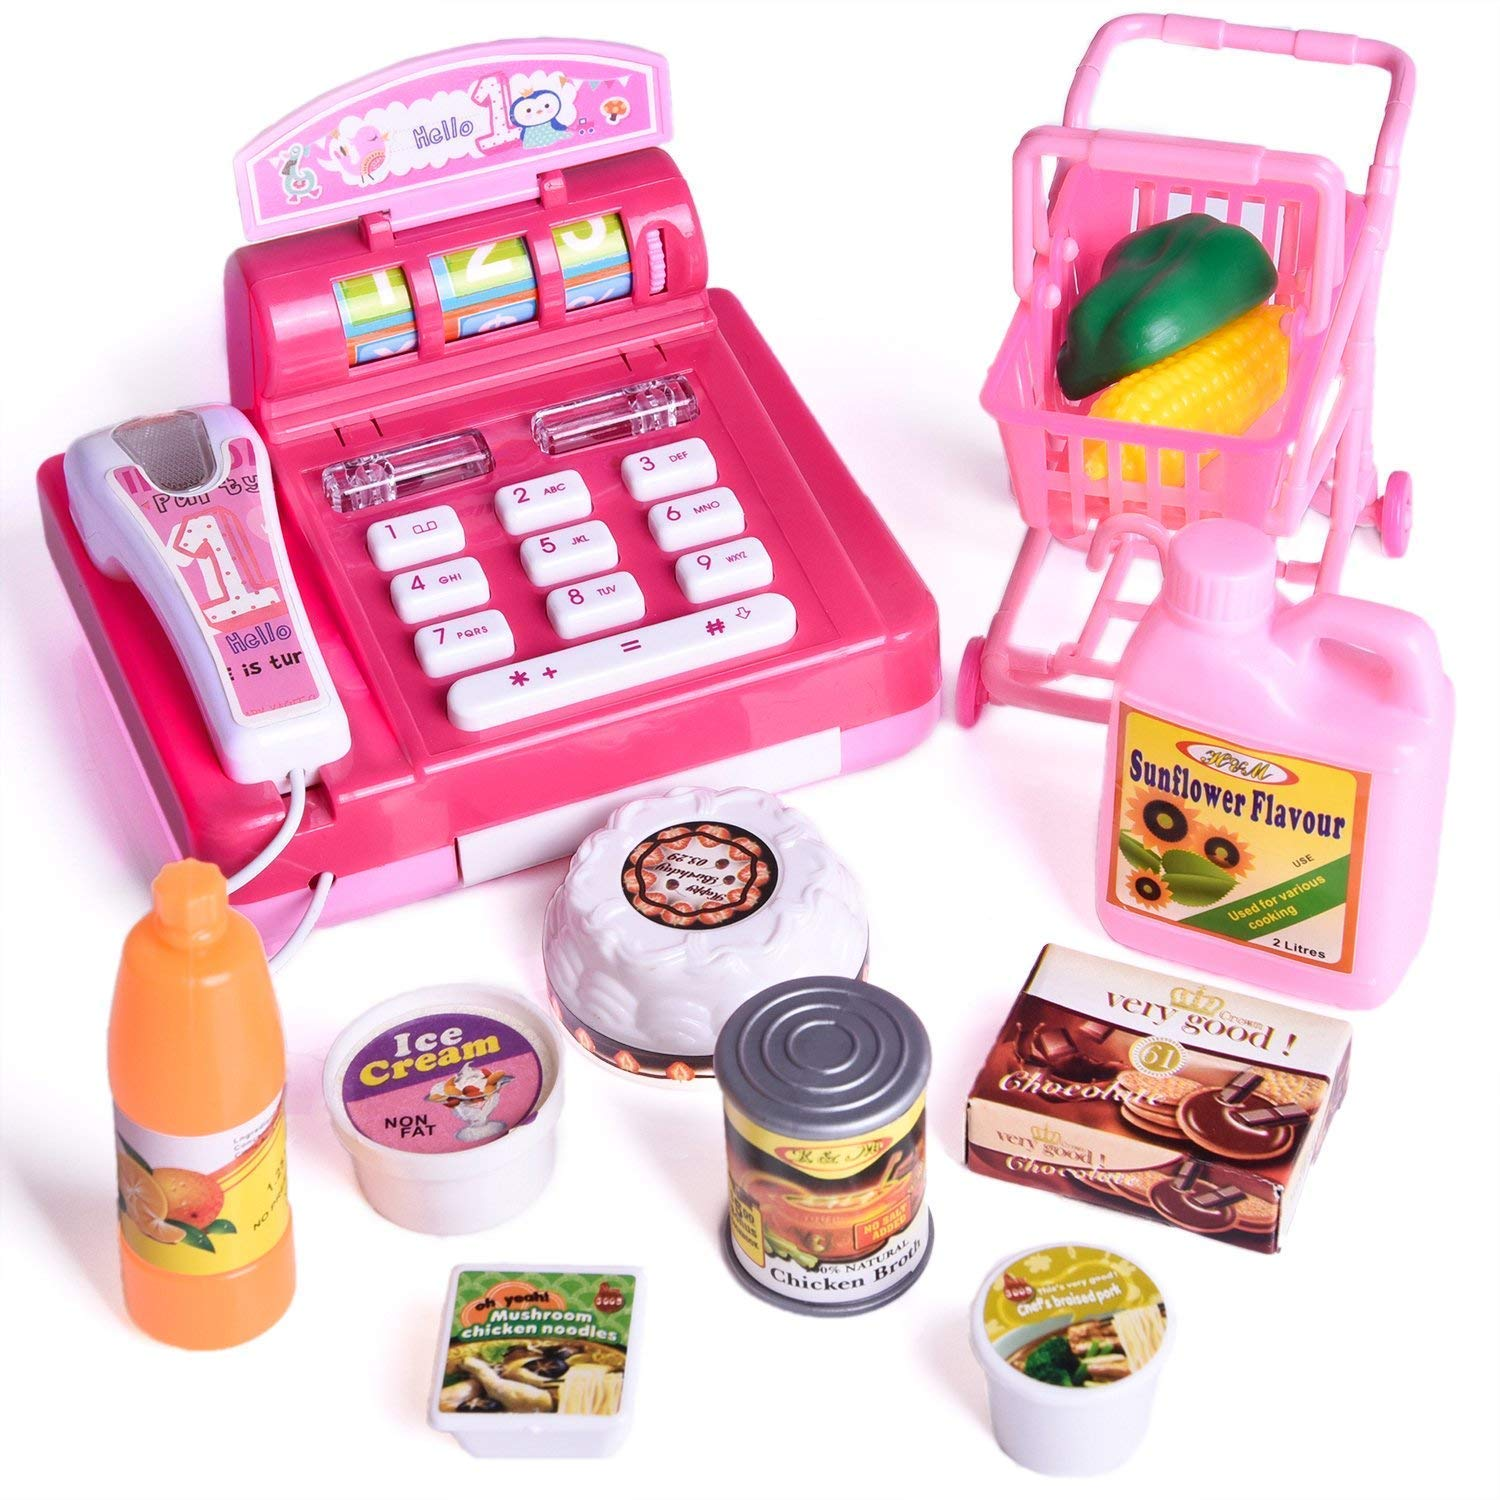 12PCs Cash Register Toys with Realistic Actions and Sounds, Pretend Play Toys for Girls, Play Store Toys for Kids by FUN LITTLE TOYS